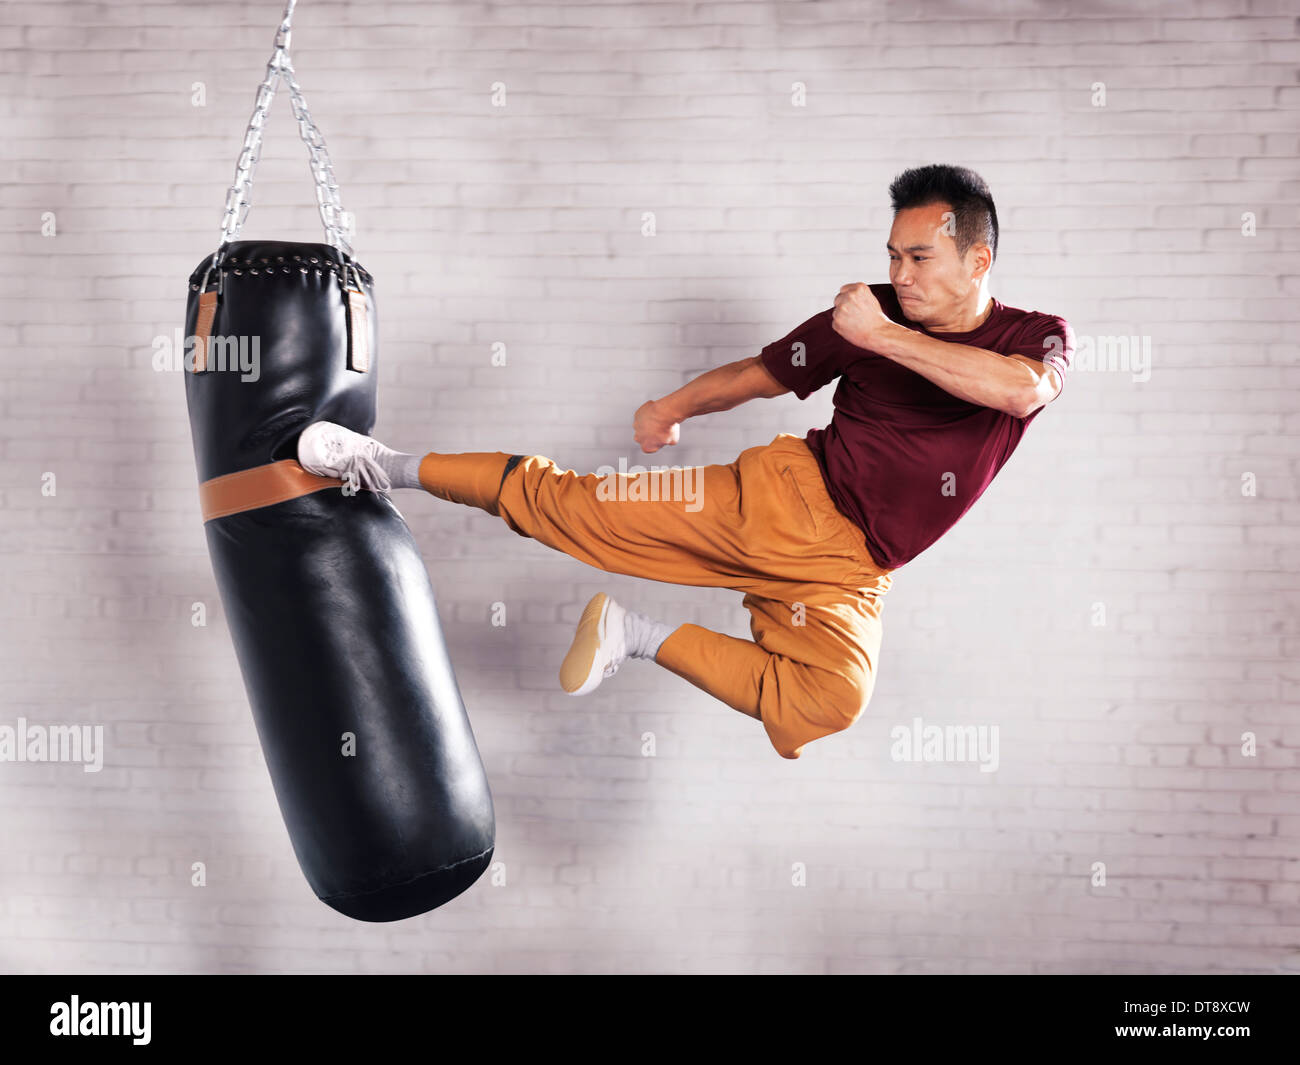 Martial artist, Shaolin Kung Fu instructor Shi Chang Dao practicing flying kick on a punching bag - Stock Image